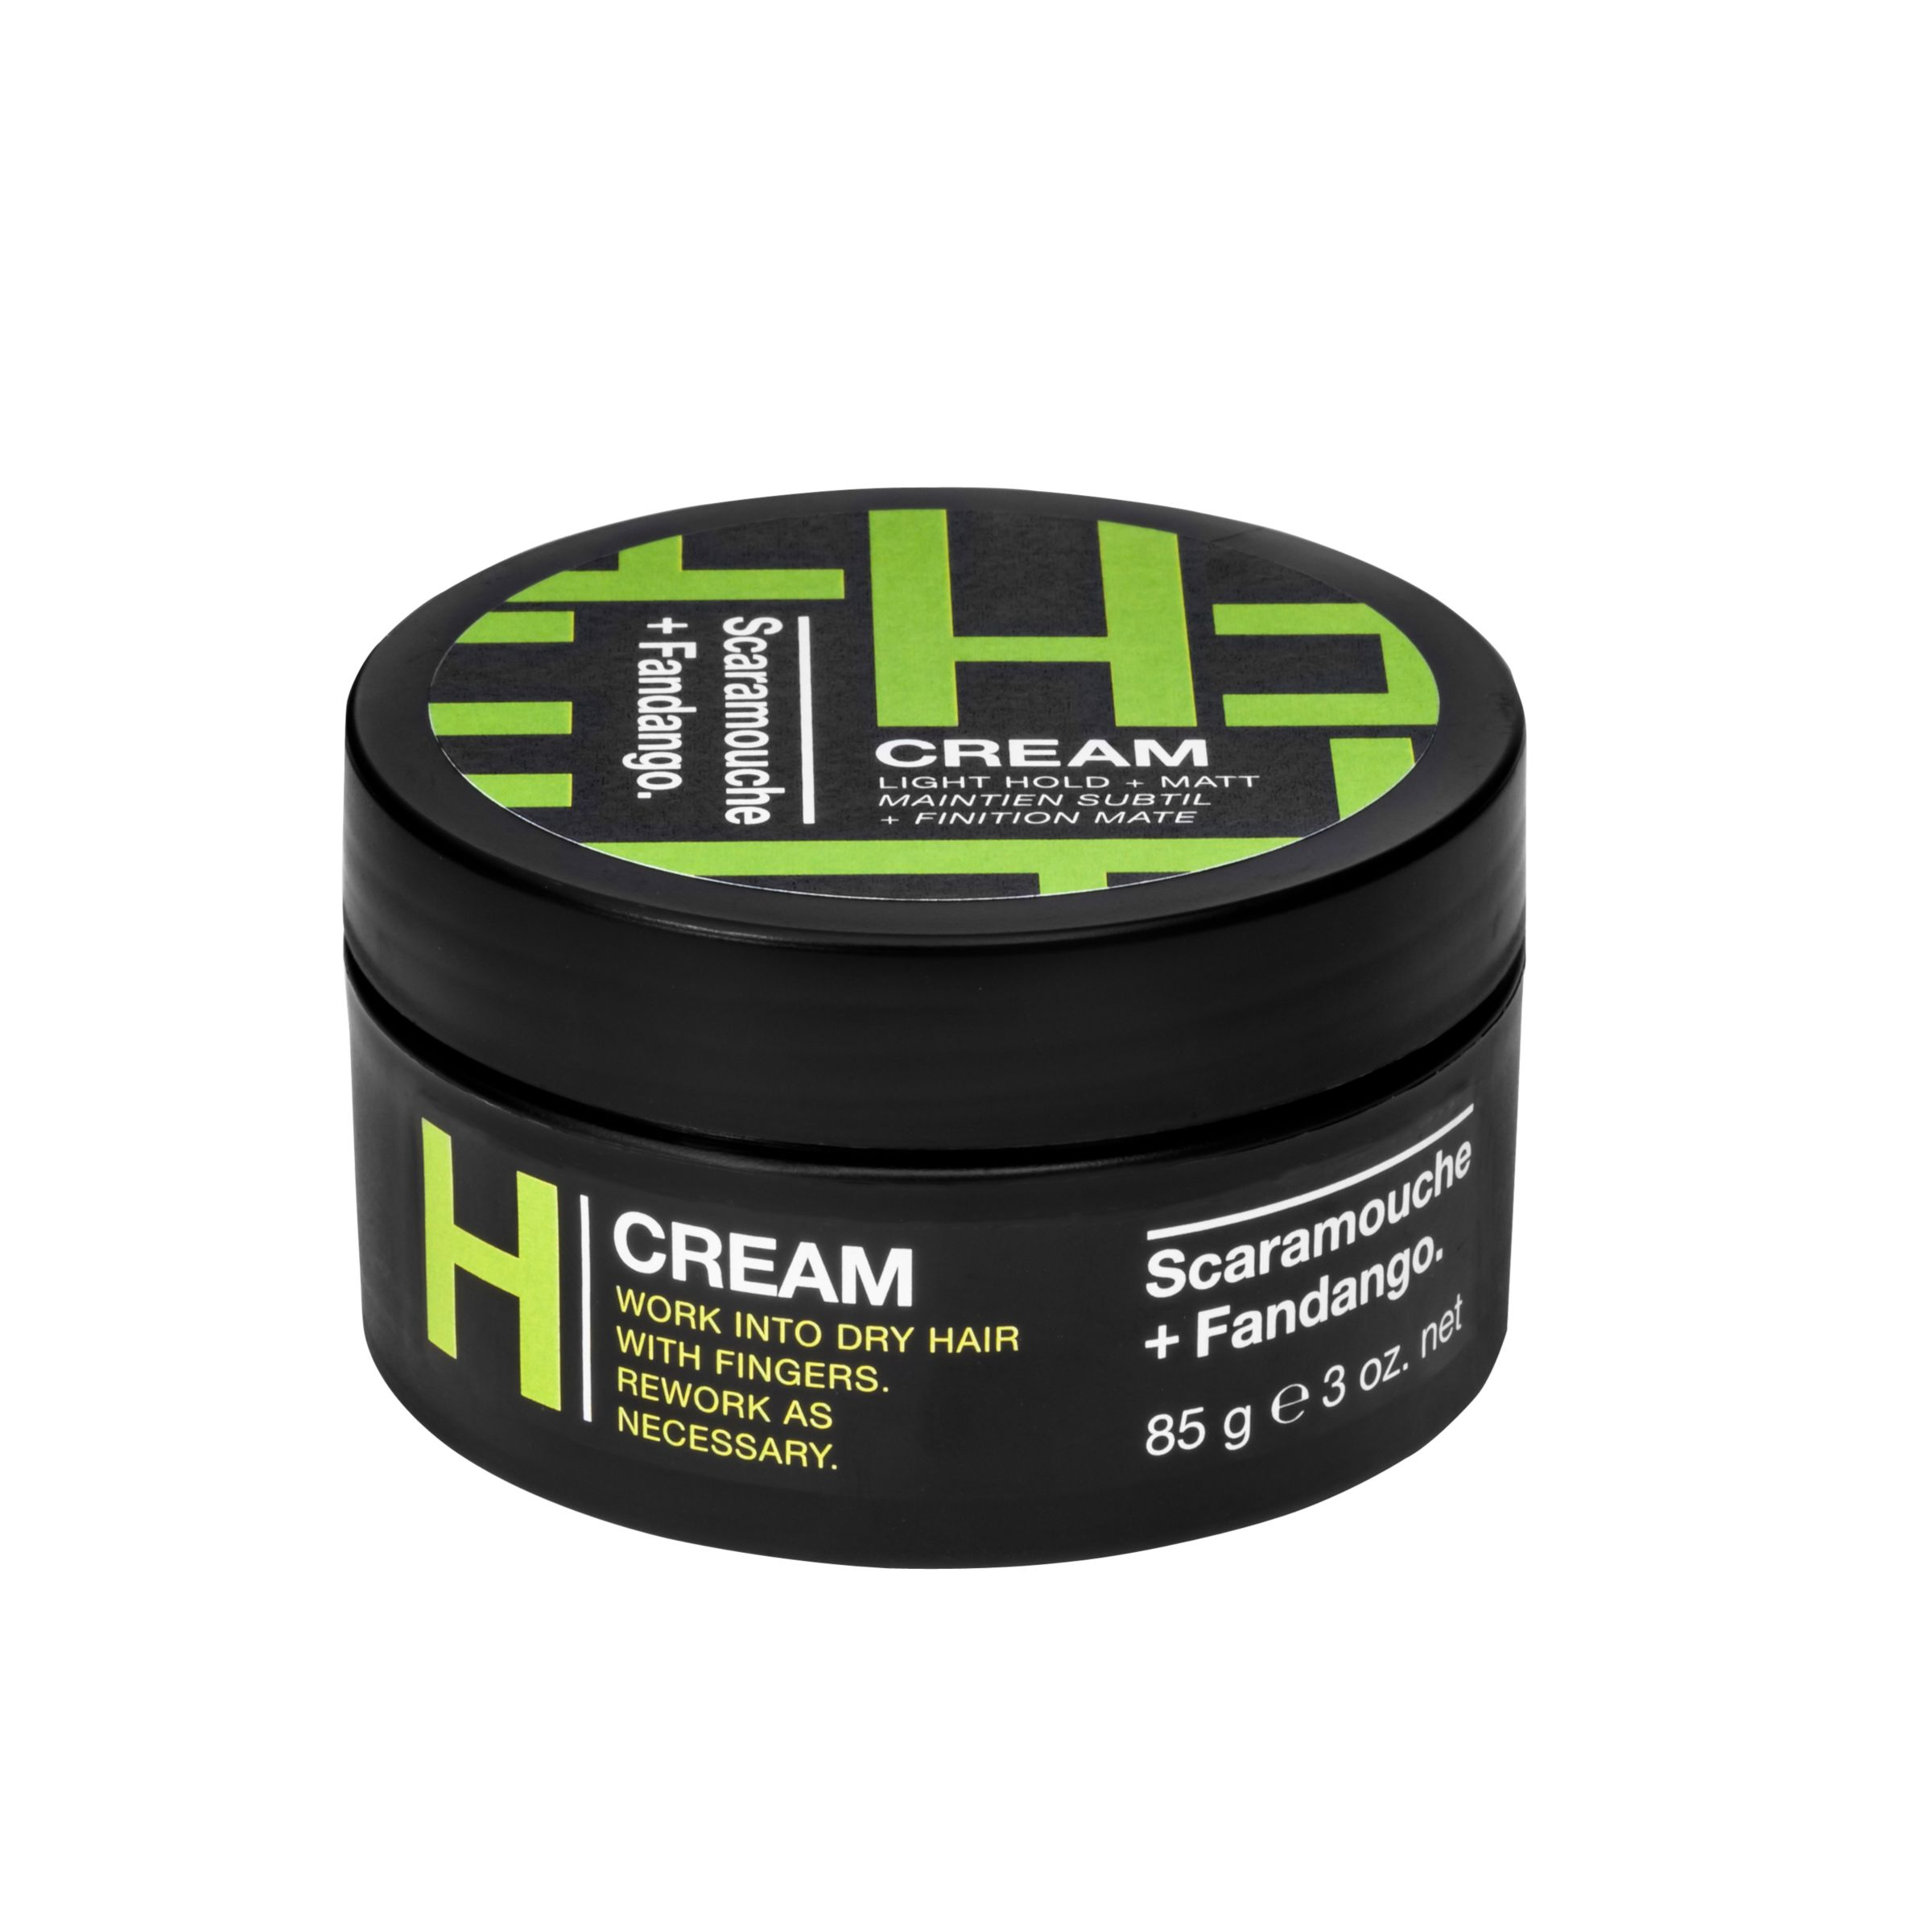 Scaramouche and Fandango Scaramouche and Fandango Hair Styling Cream, 85g